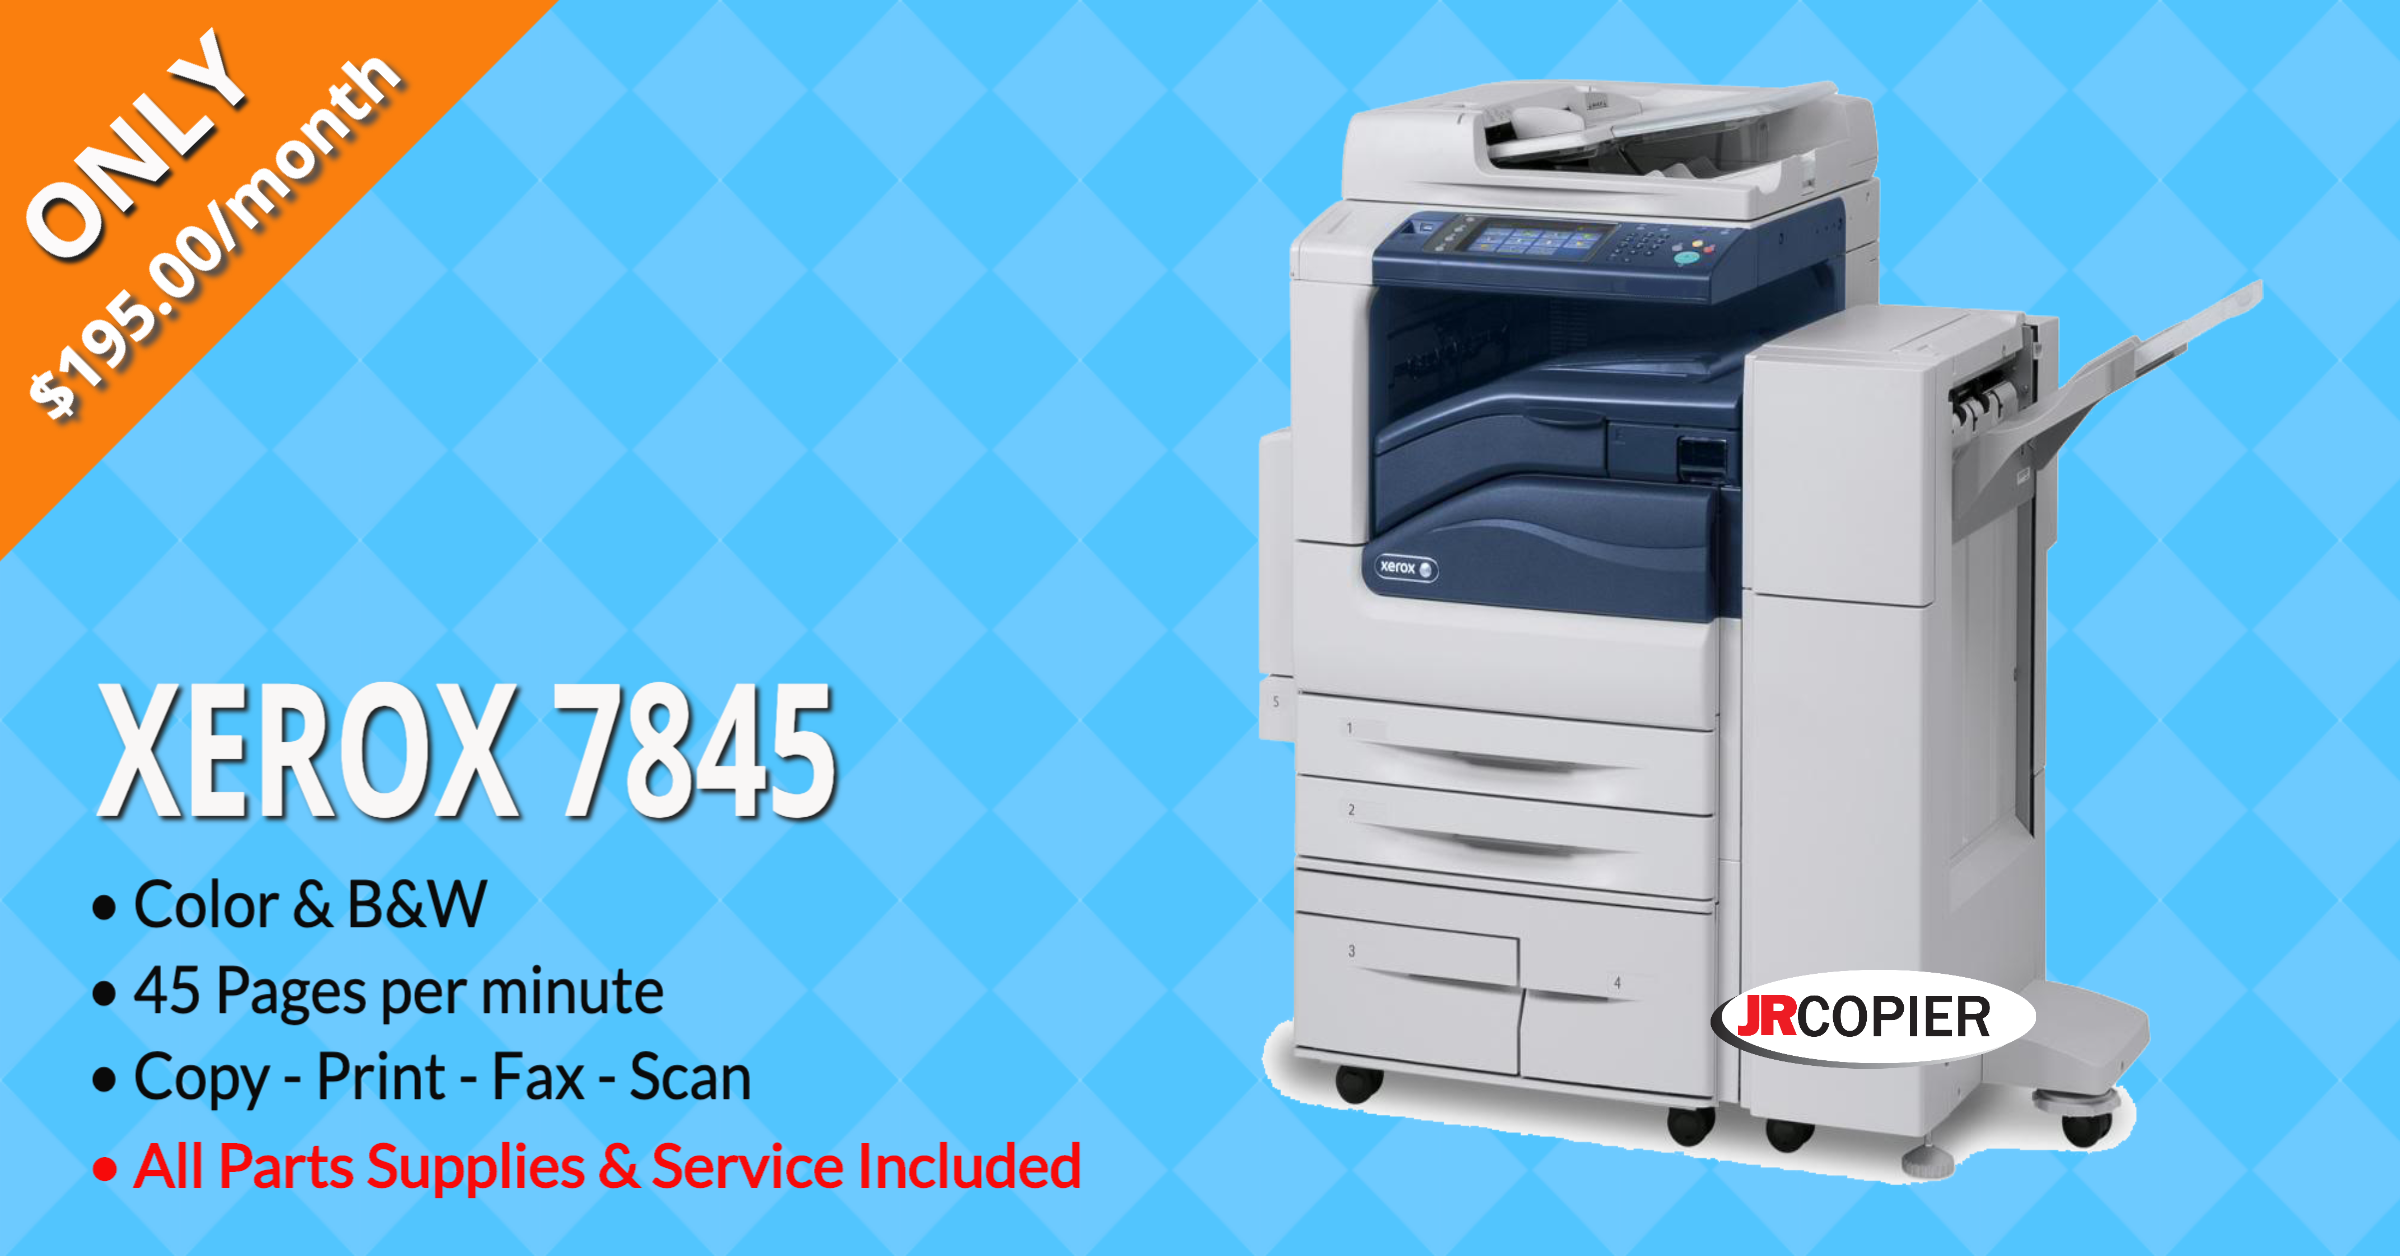 Multifunction Printer Sales 11530, 11549, 11553, 11555, 11556, 11590